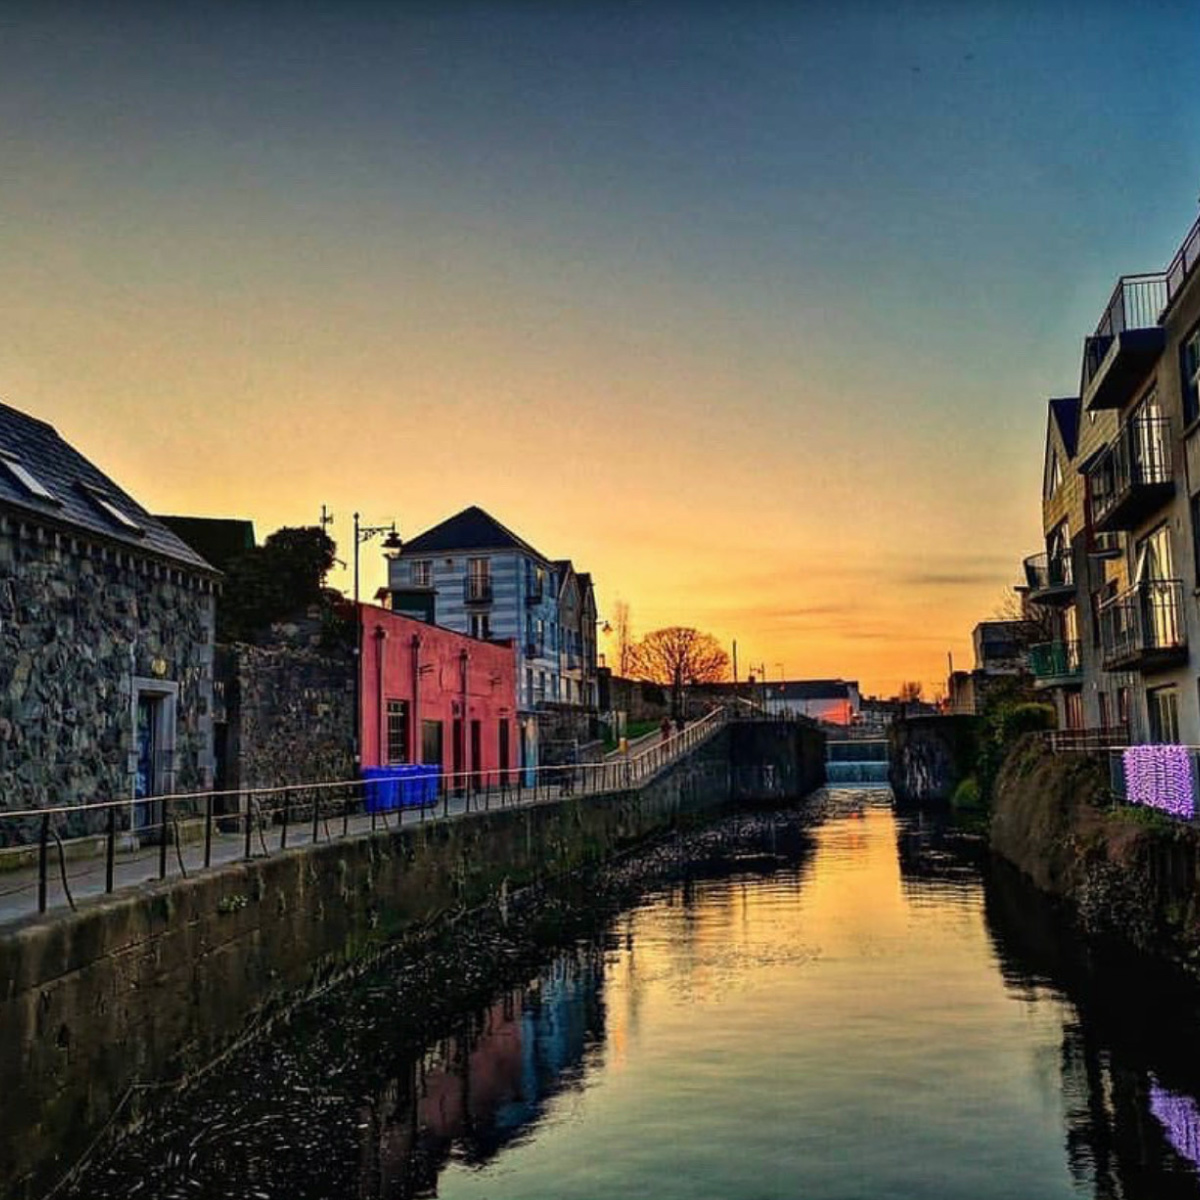 Photo by Galway City Photographs